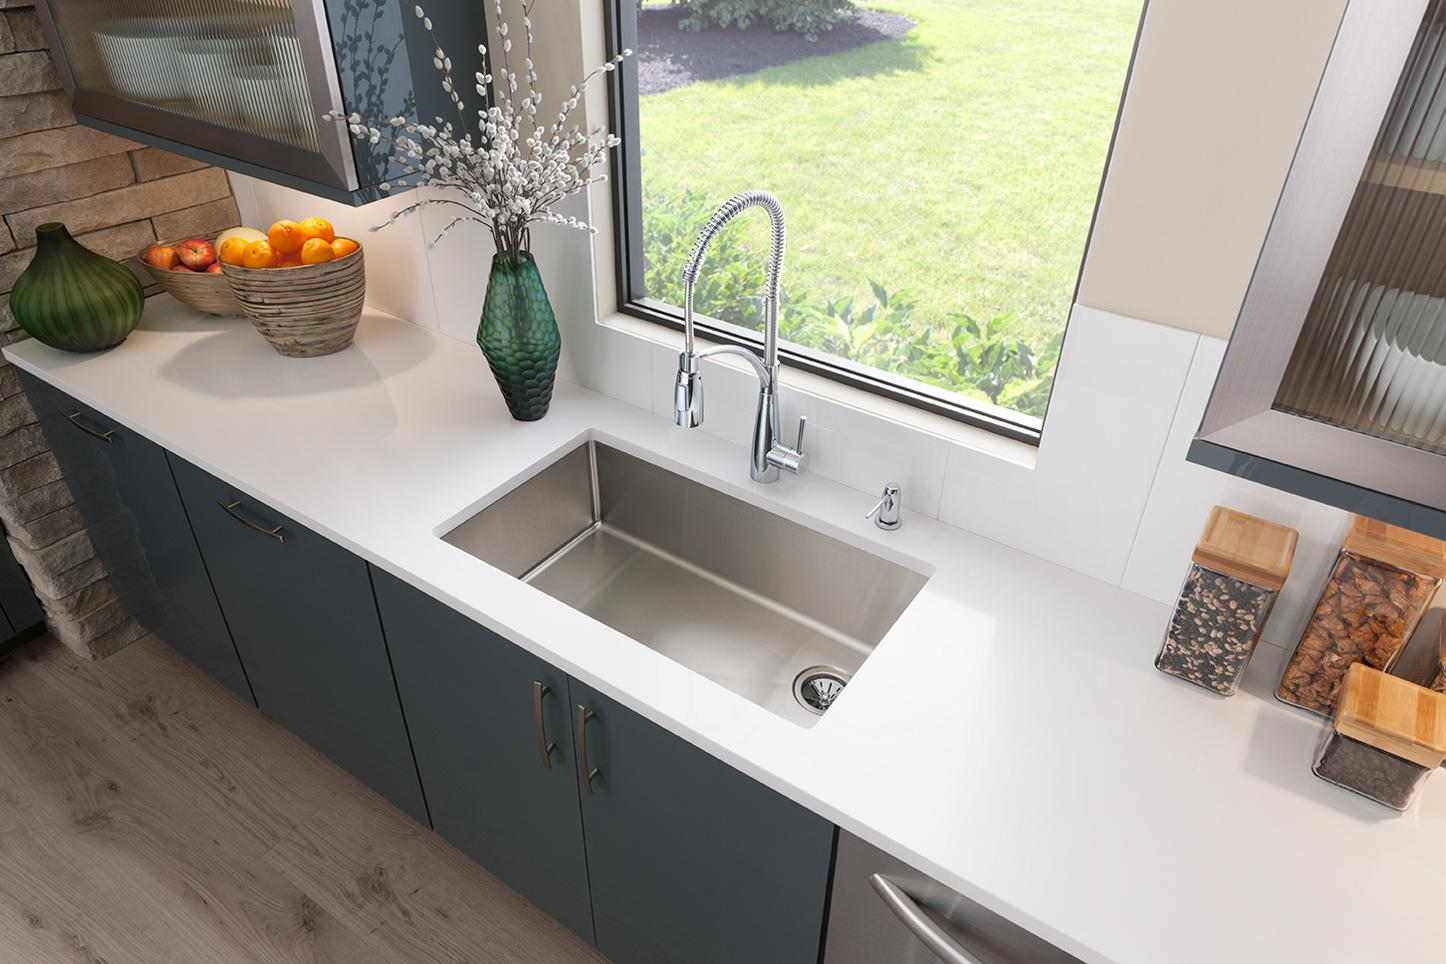 crosstown stainless steel kitchen sinks elkay undermount install under the counter to create a clean uninterrupted feel